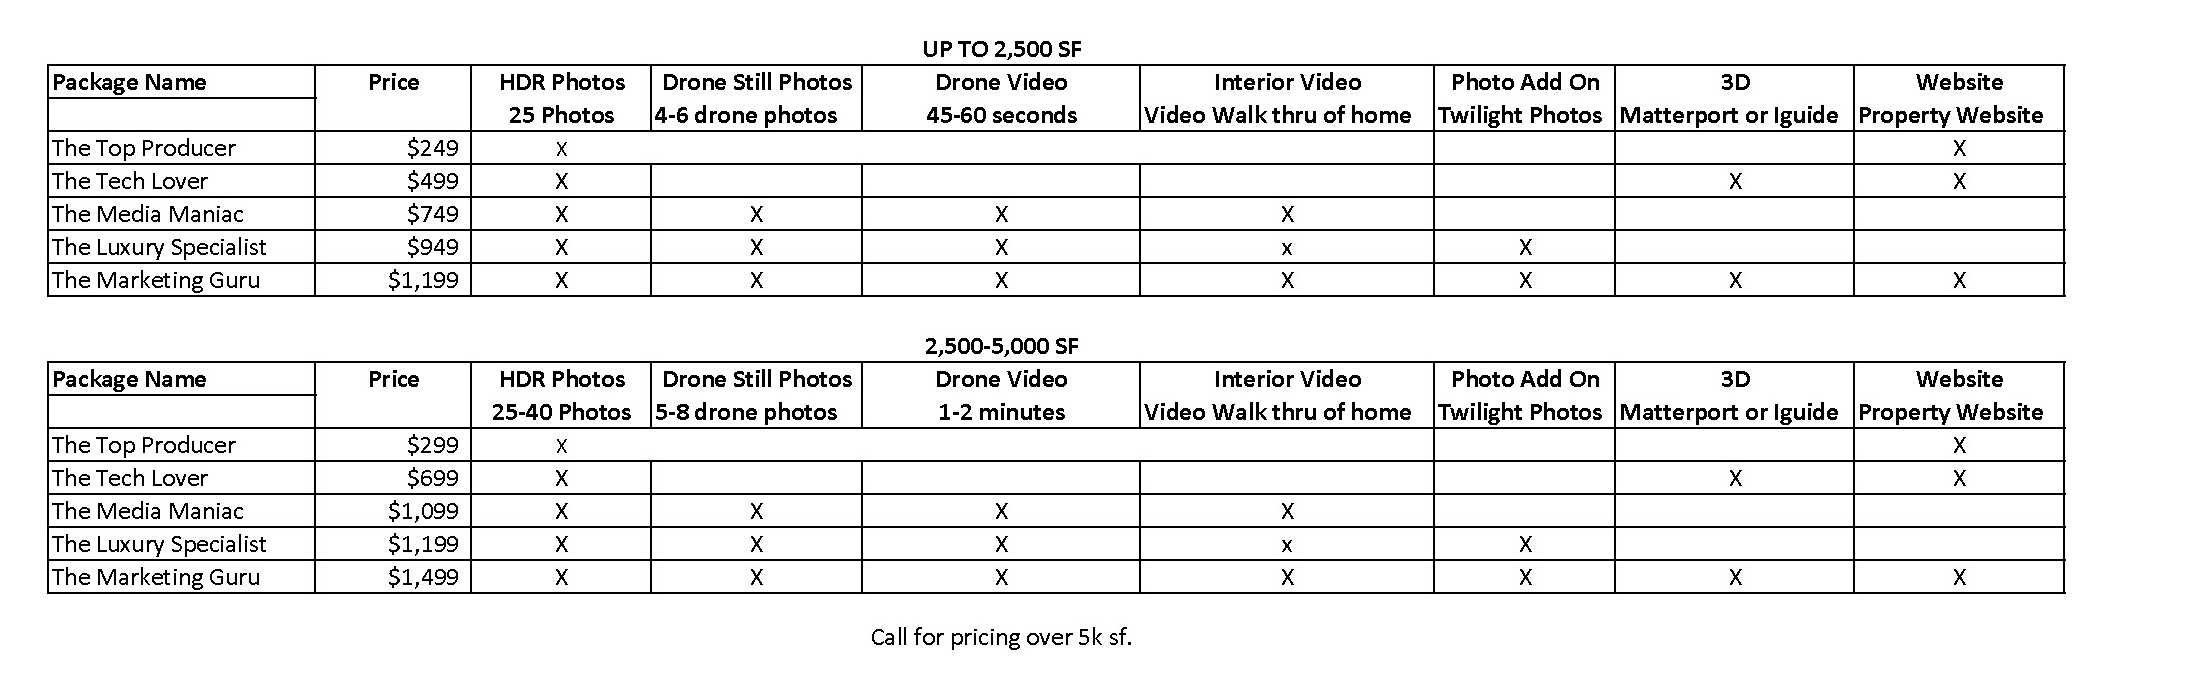 Pricing worksheet v2.xlsx.jpg